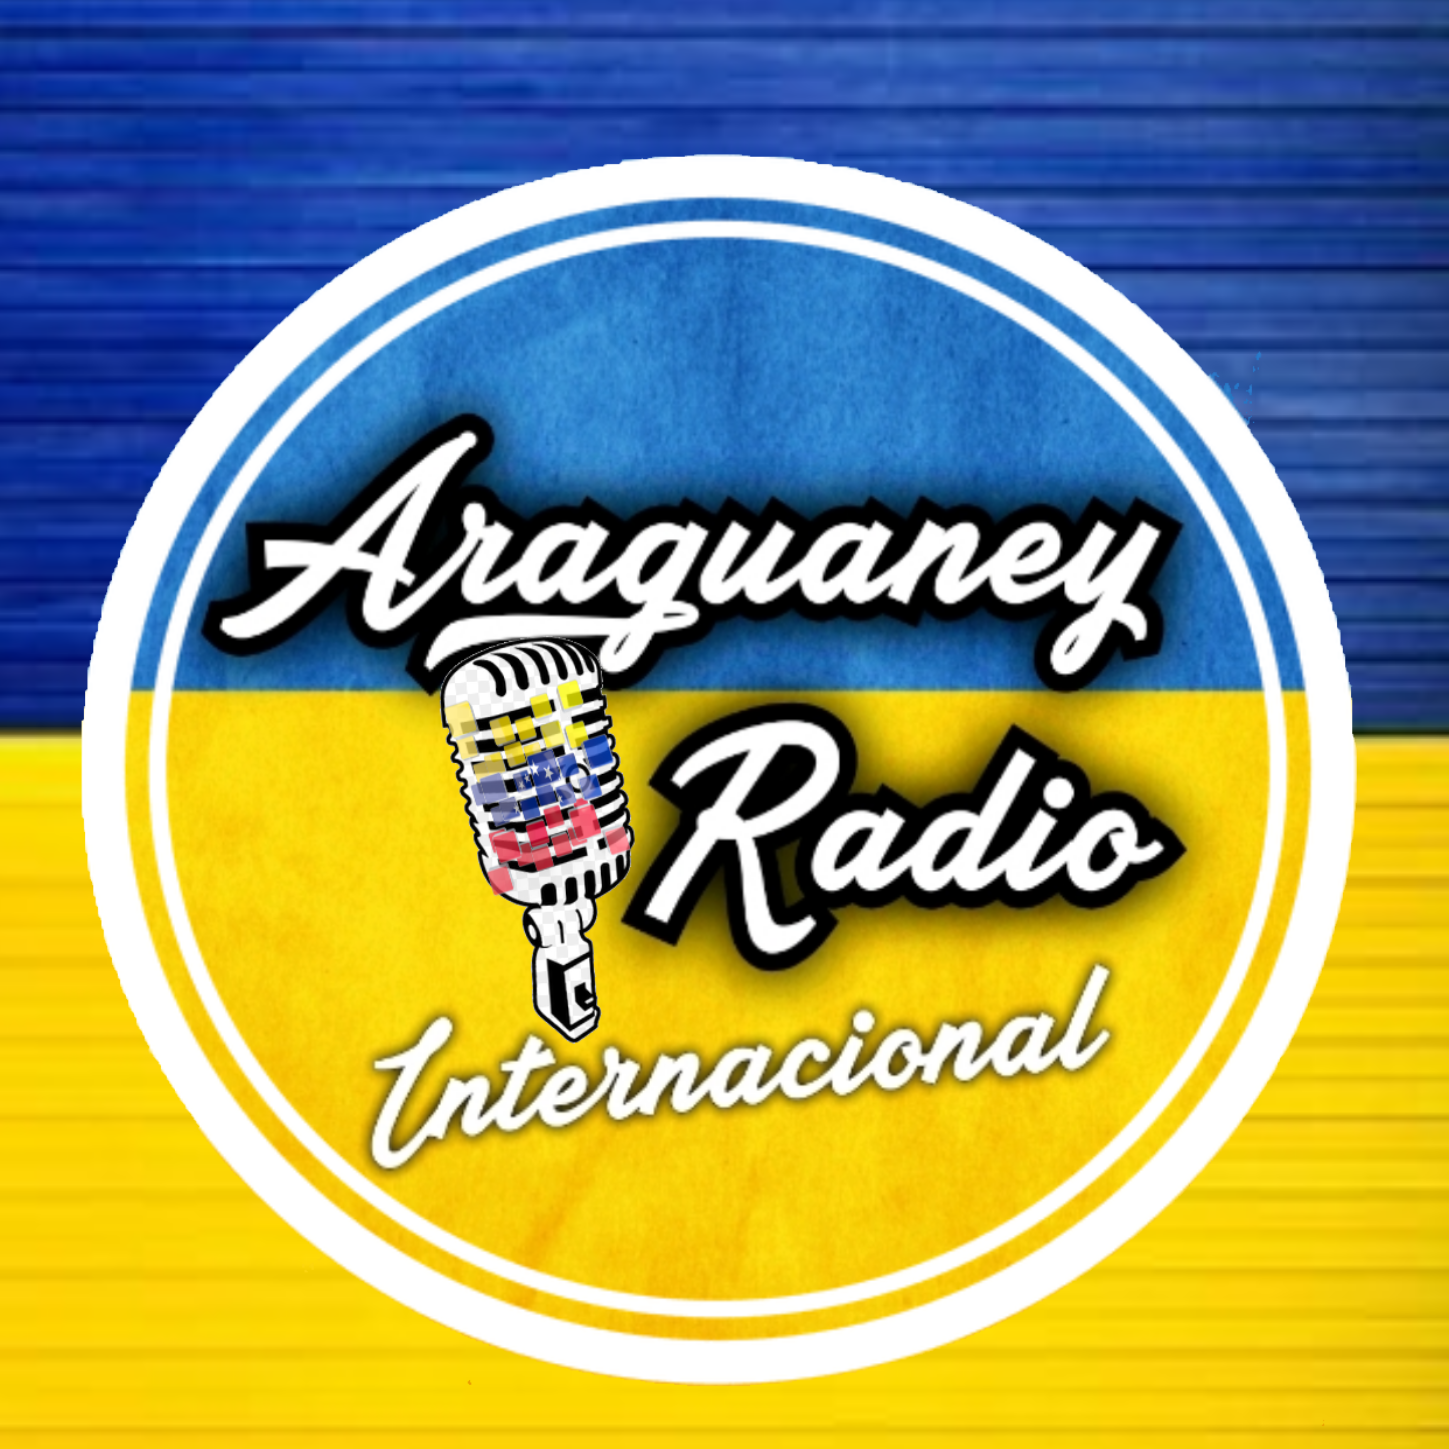 Araguaney Radio